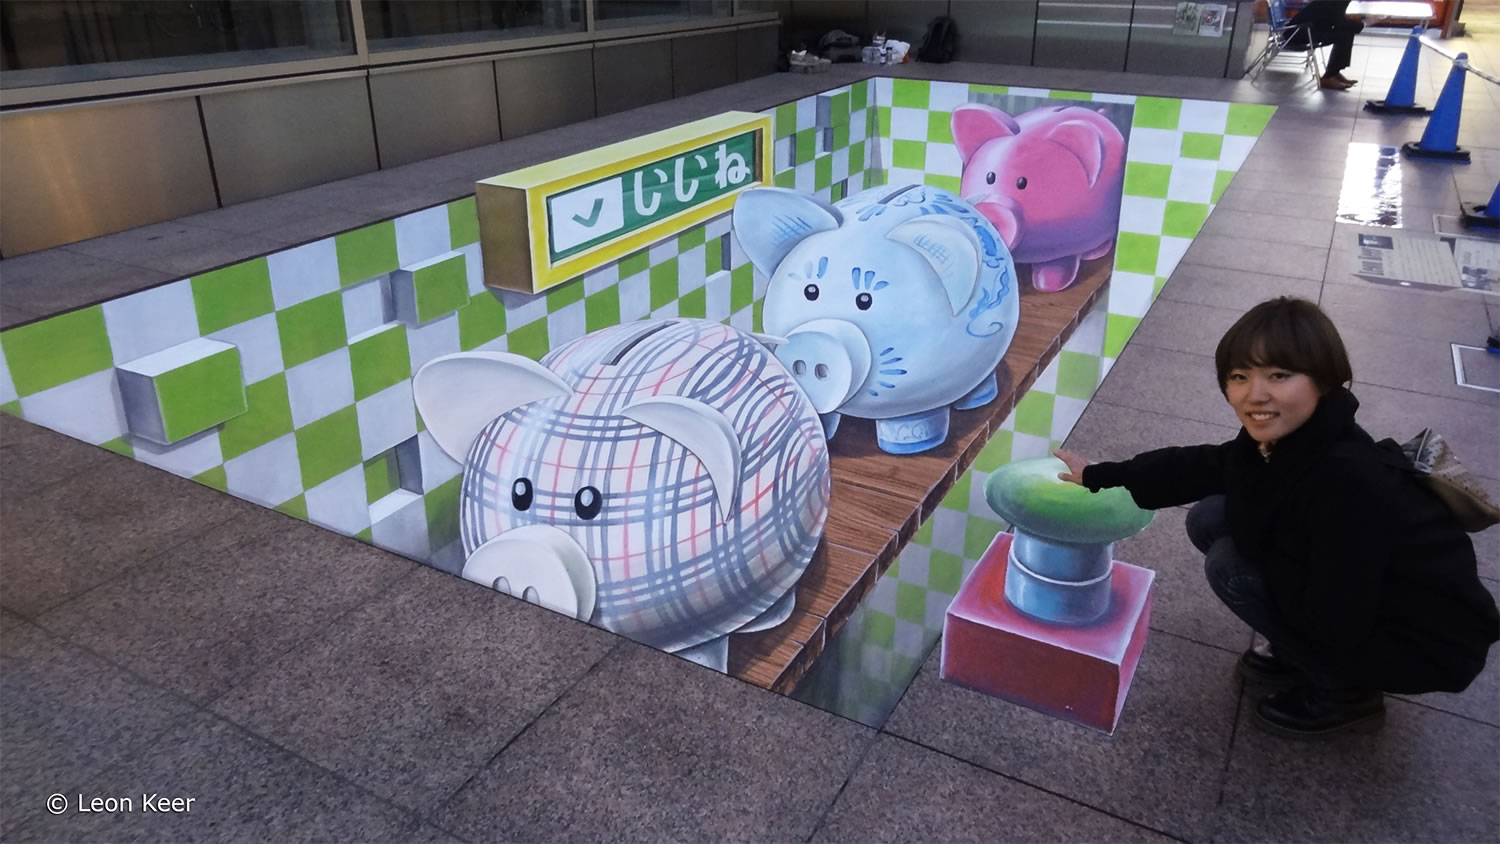 3 piggy banks, anamorphic 3d art by leon keer